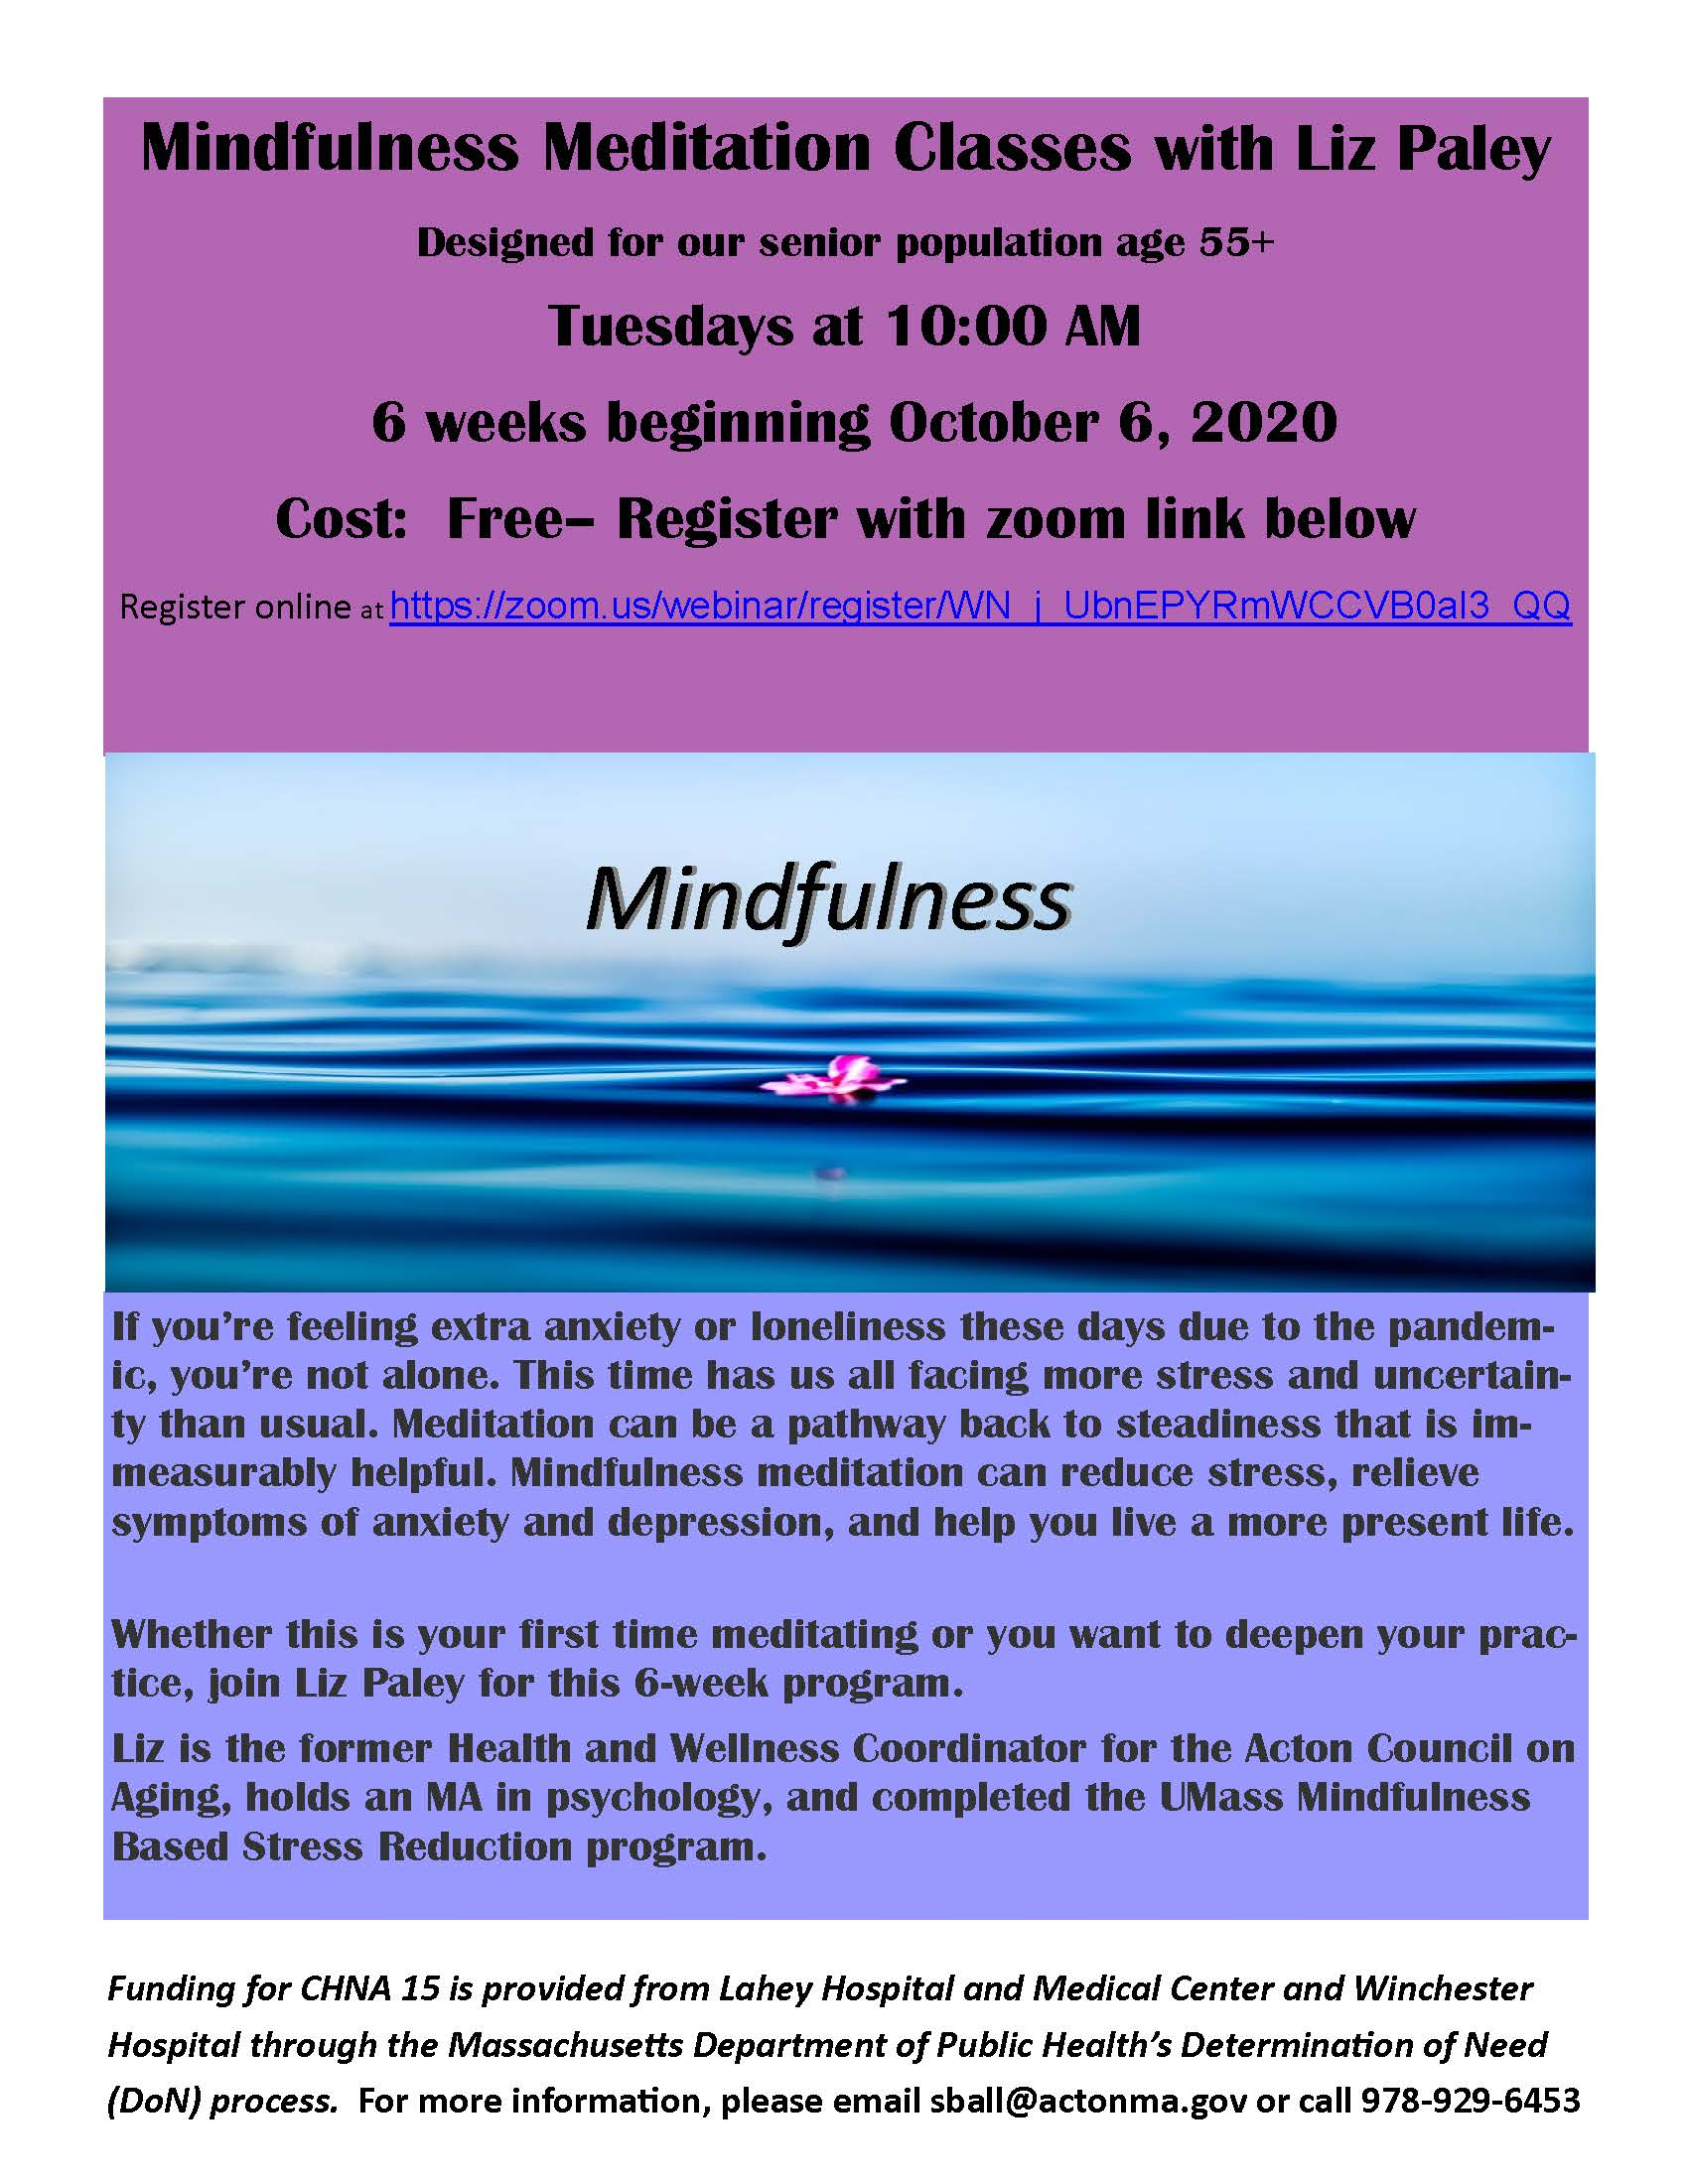 Mindfulness Meditation Invite